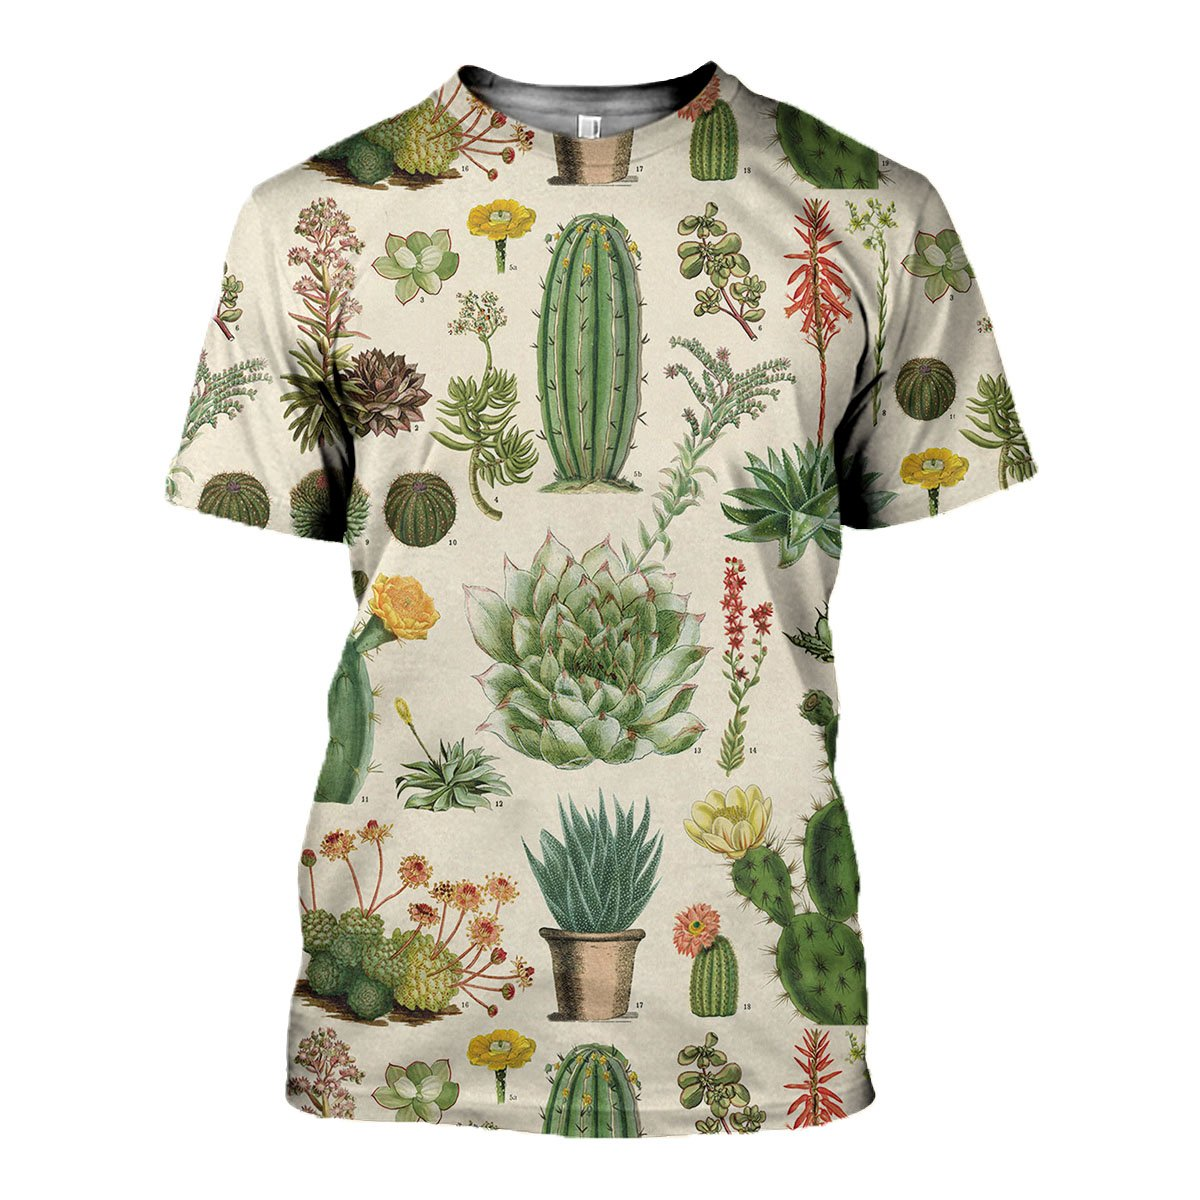 3D All Over Printed Succulent Shirts And Shorts - gopowear.com